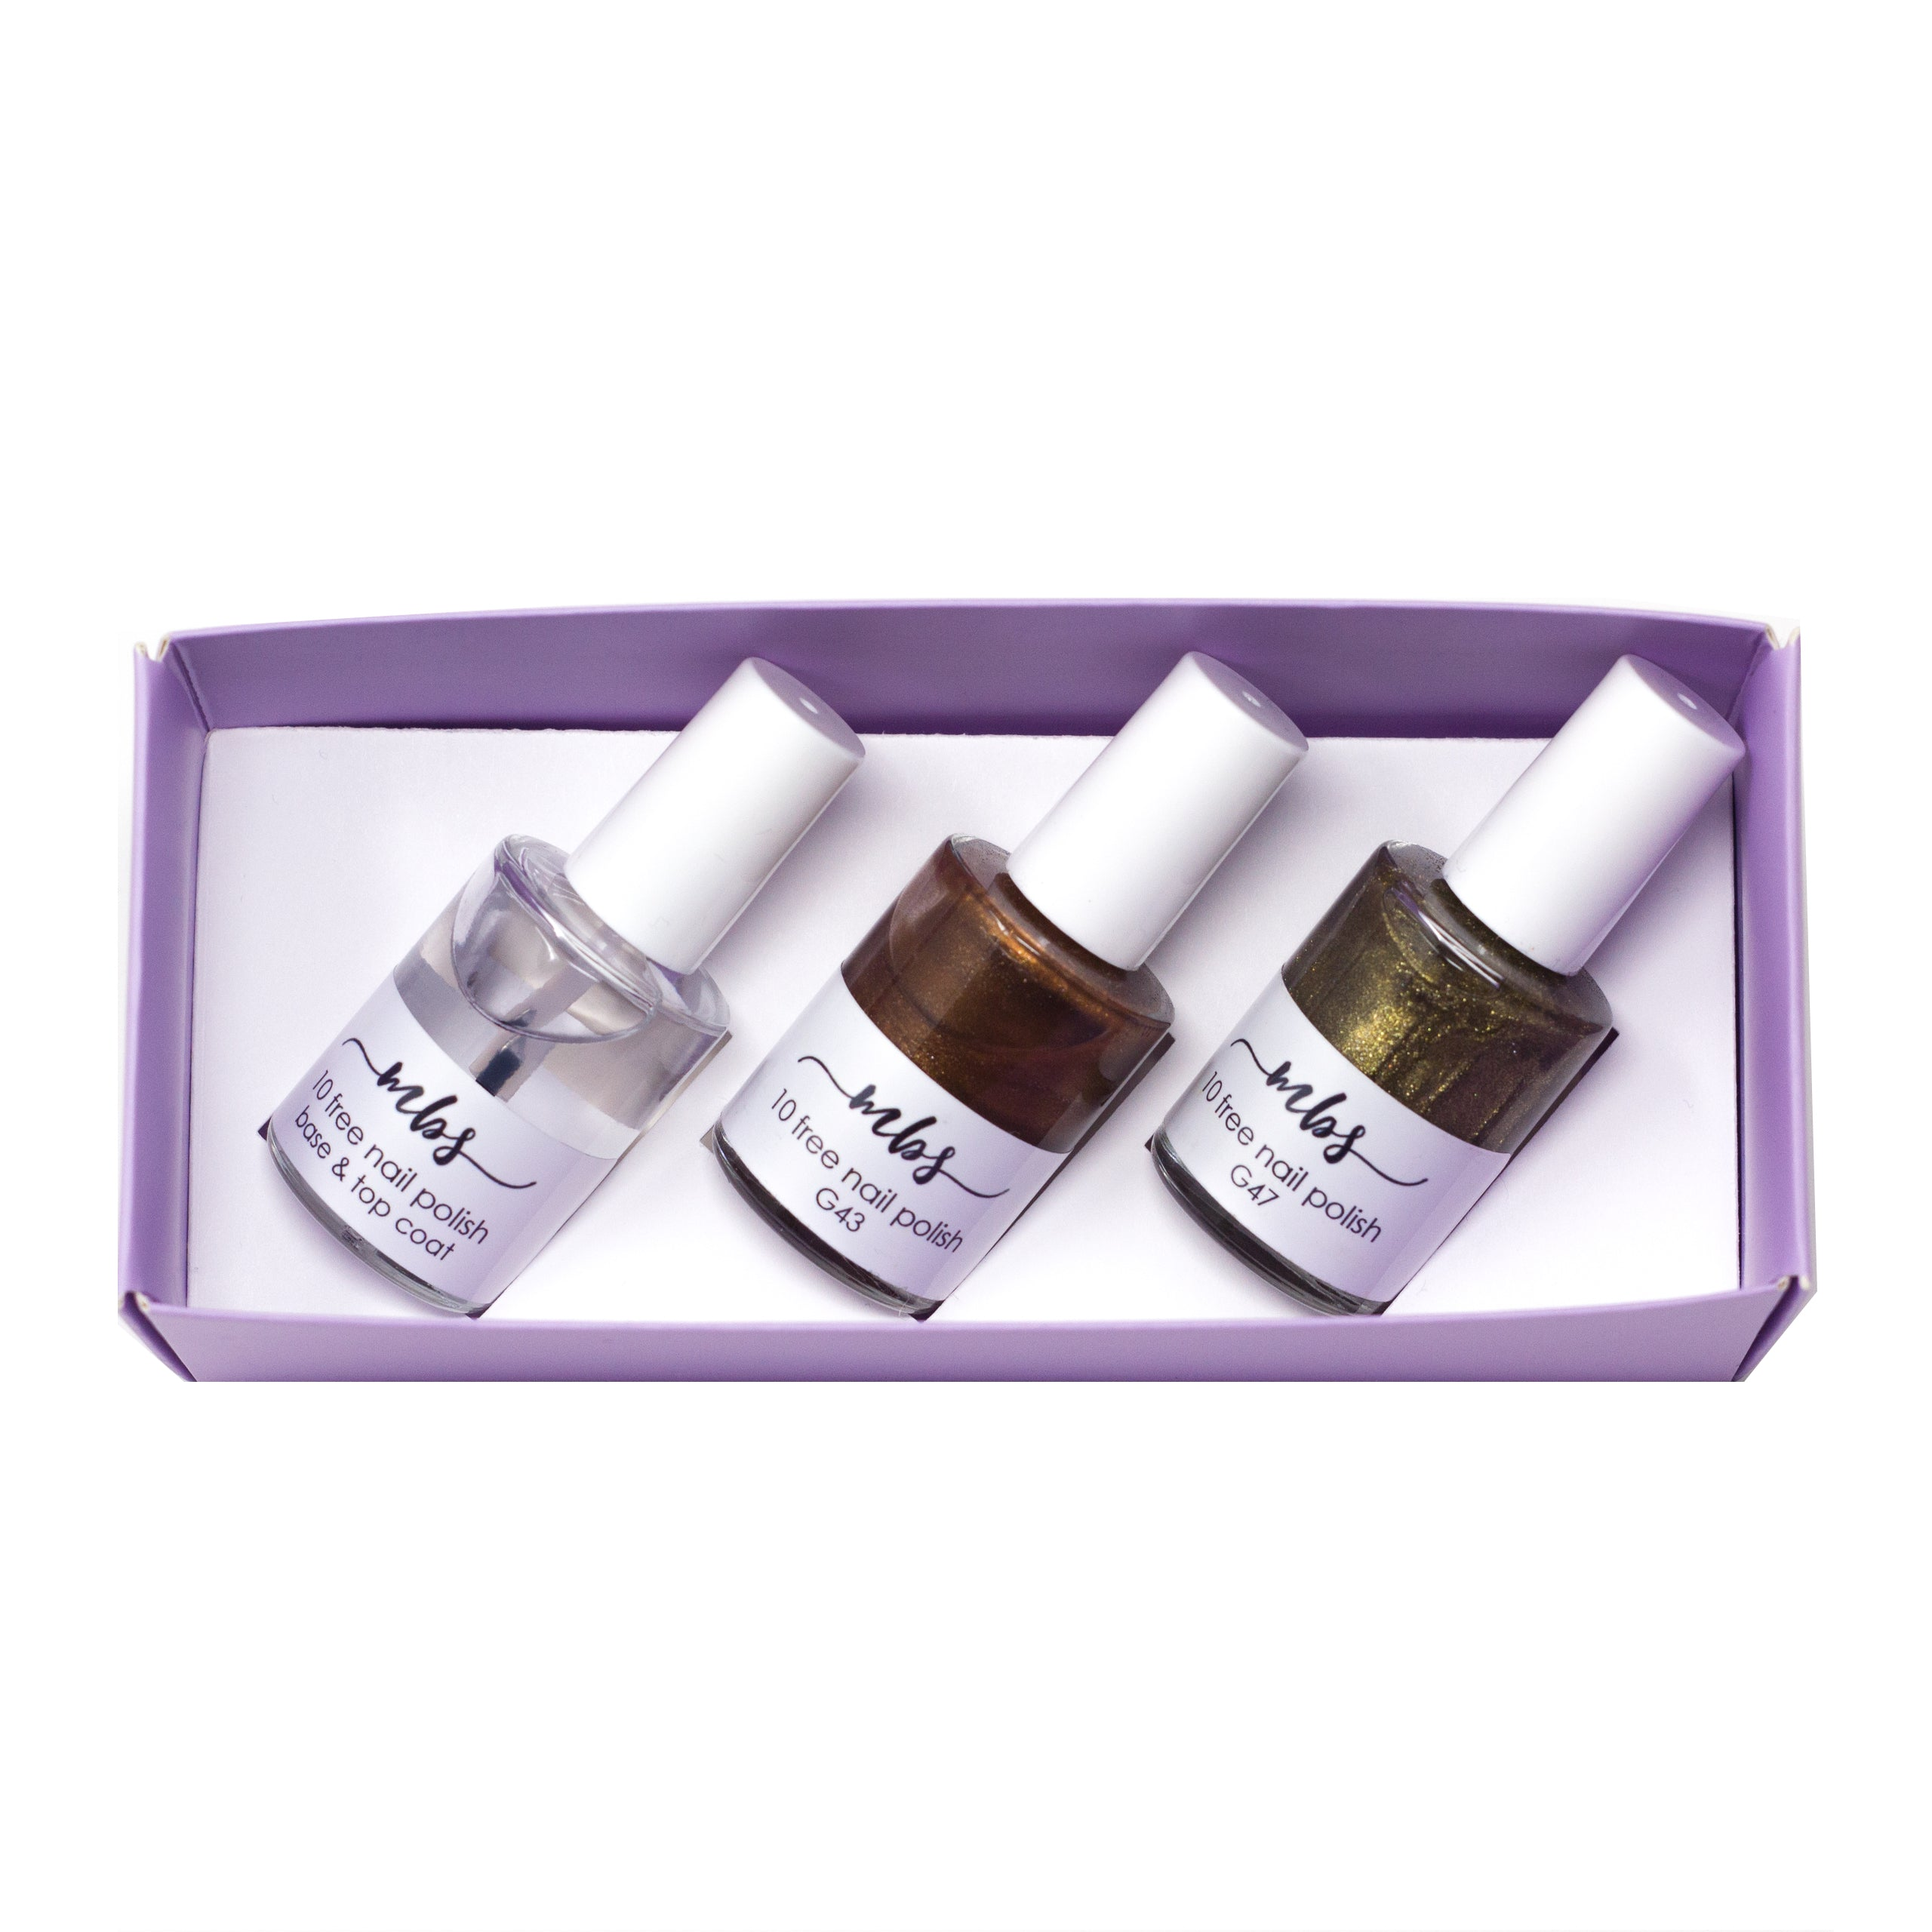 Nail Polish Trio (G43 + G47 + Clear Coat)-Gifts-Morning Blossom Studio